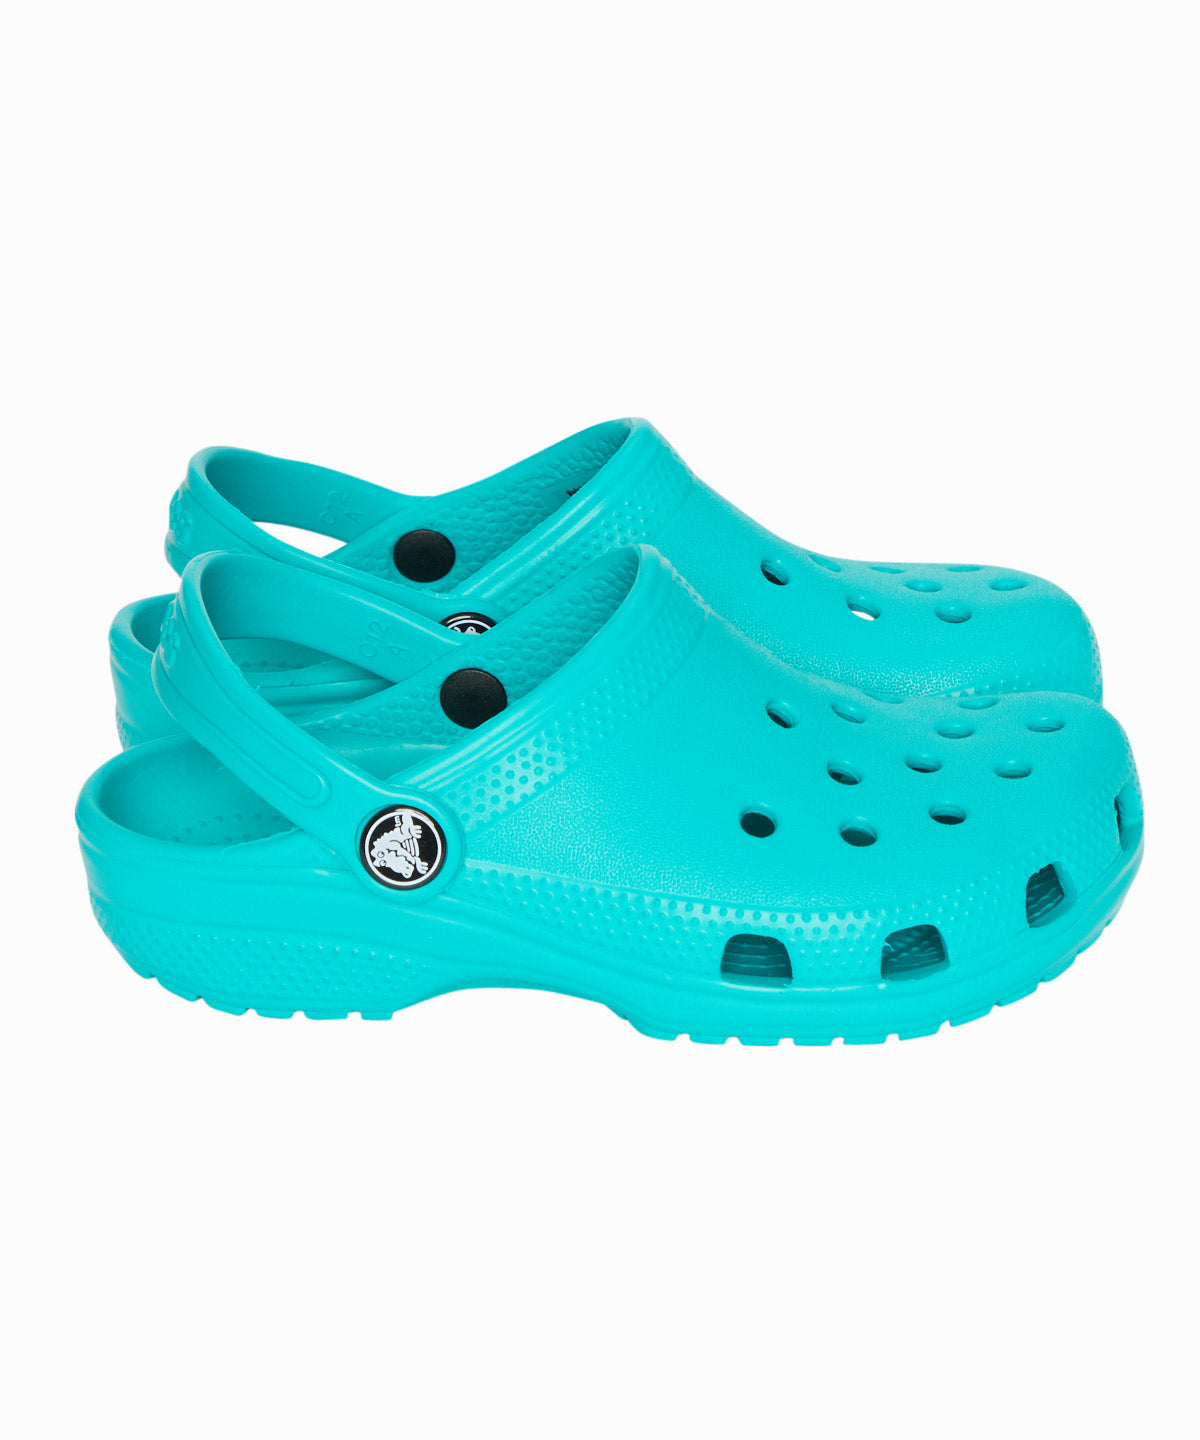 Teal Clog Crocs